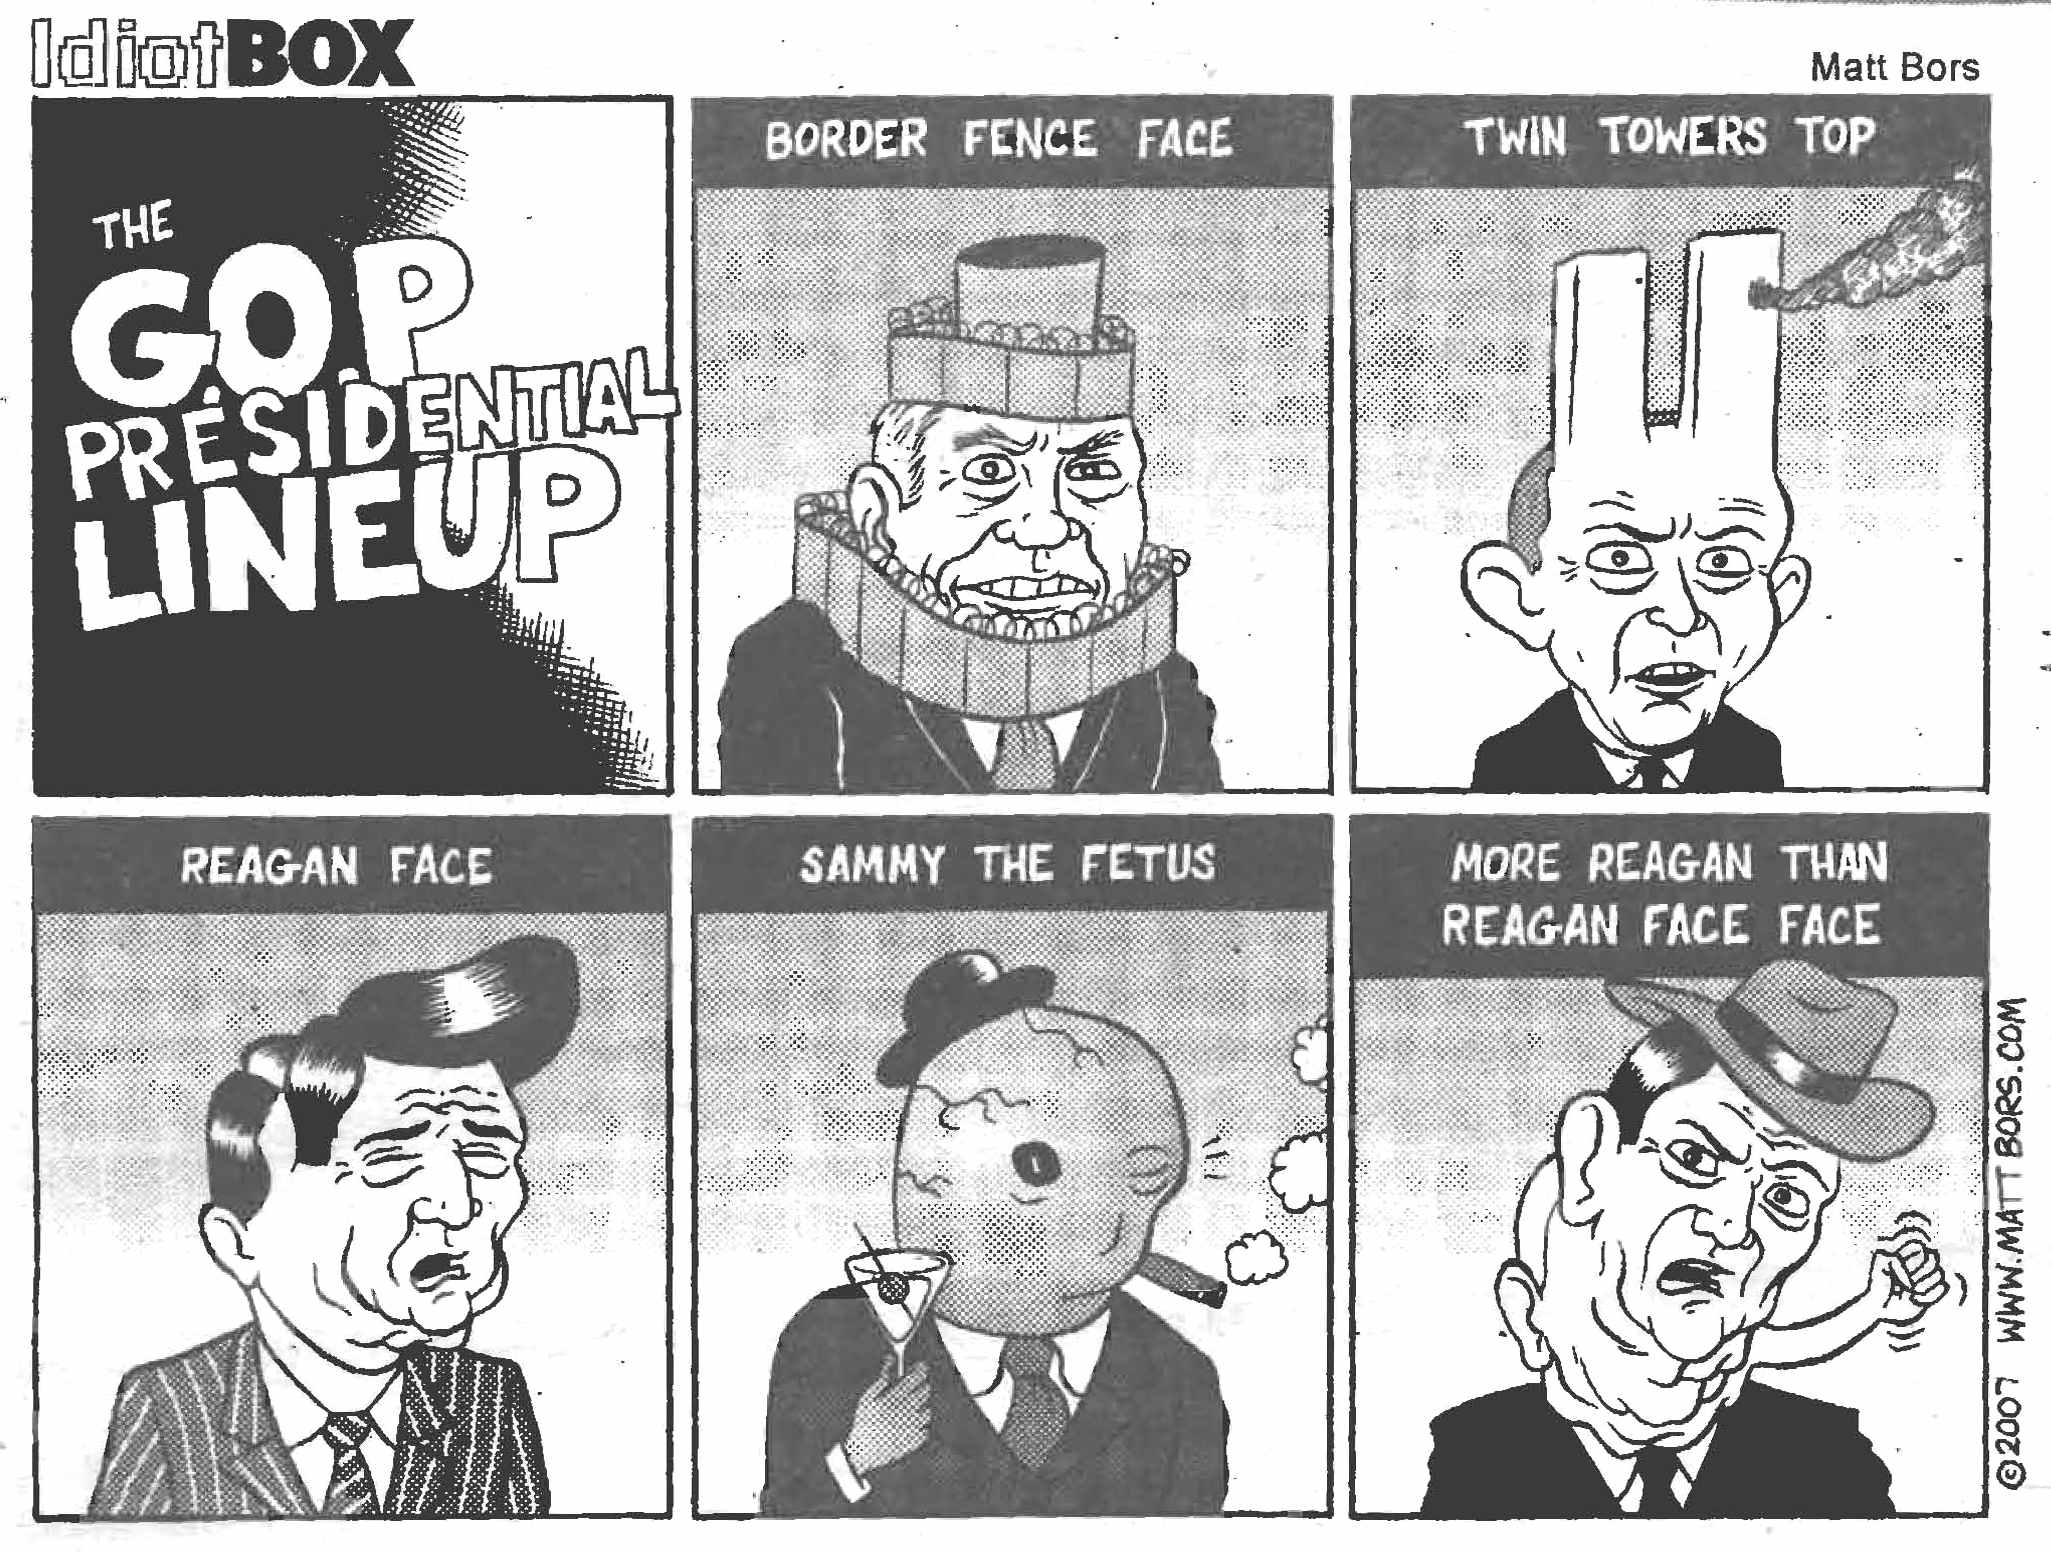 The GOP Presidential Line-up